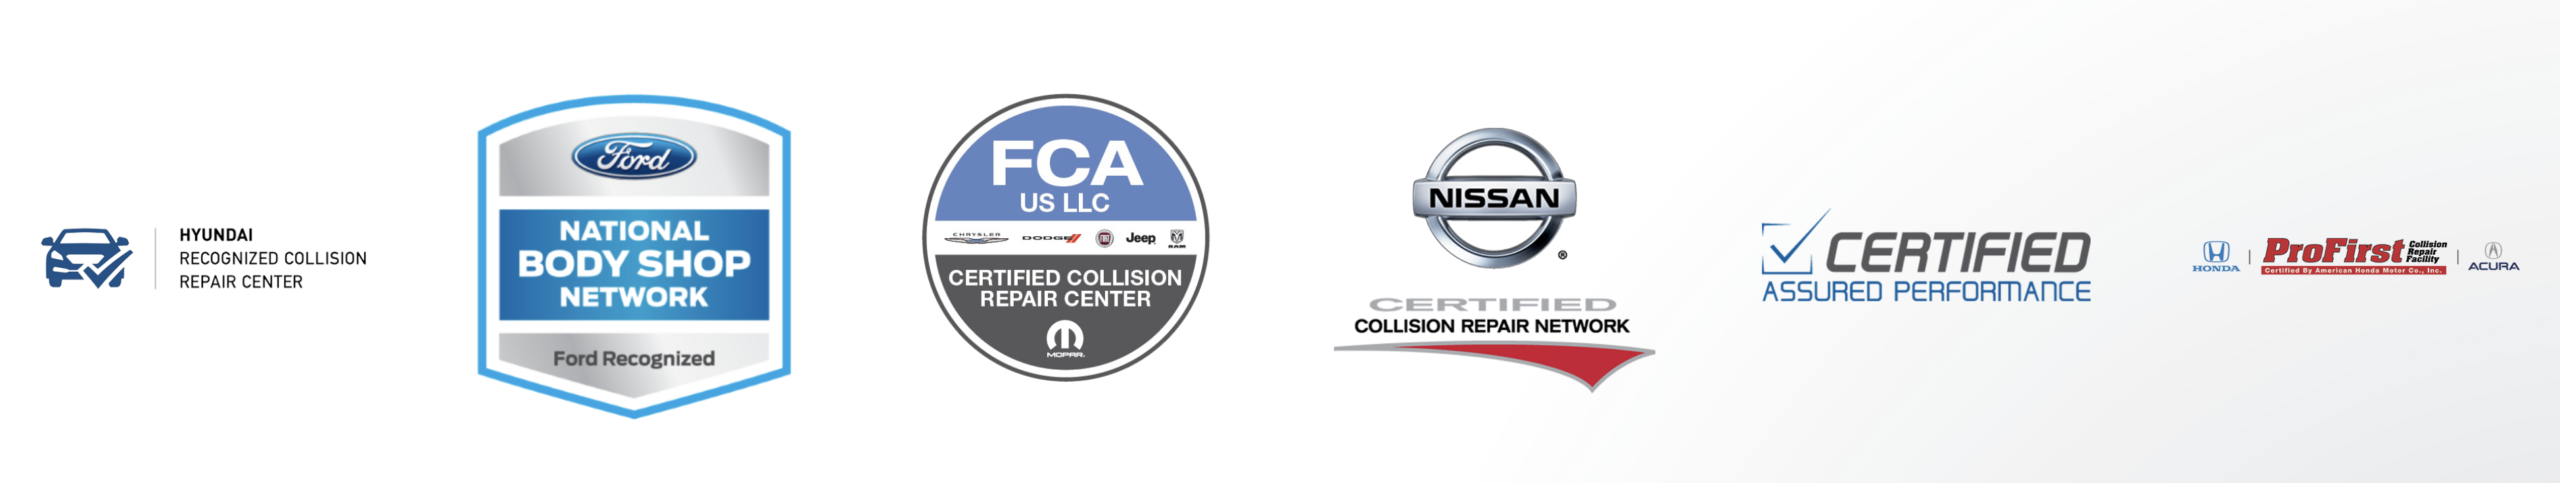 Butler's Collision certifications